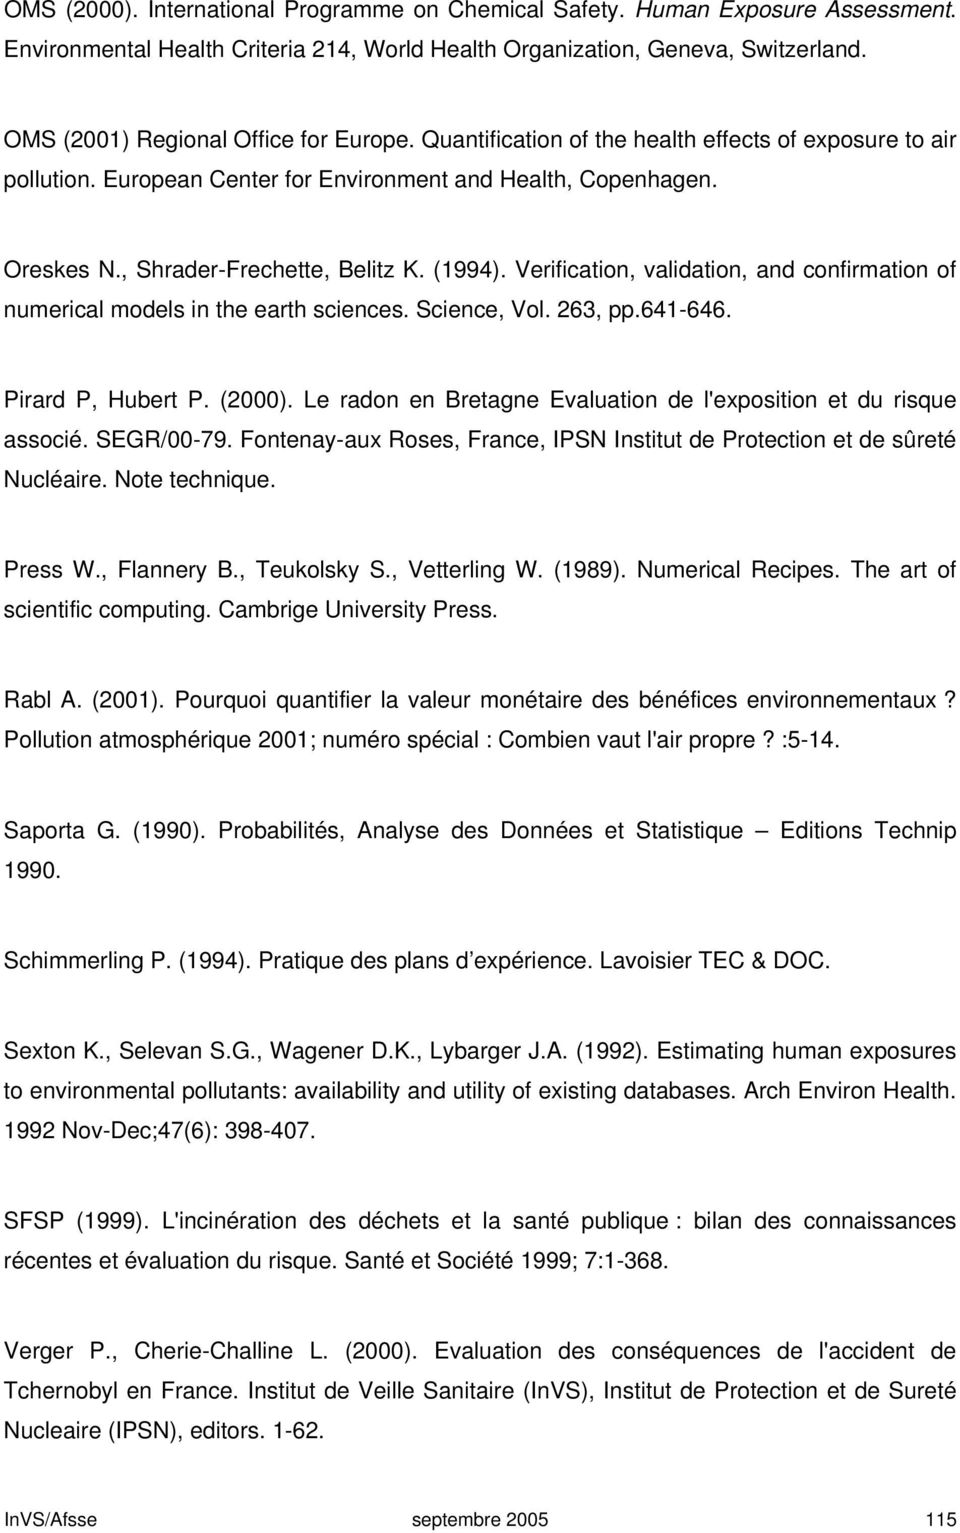 , Shrader-Frechette, Belitz K. (1994). Verification, validation, and confirmation of numerical models in the earth sciences. Science, Vol. 263, pp.641-646. Pirard P, Hubert P. (2000).